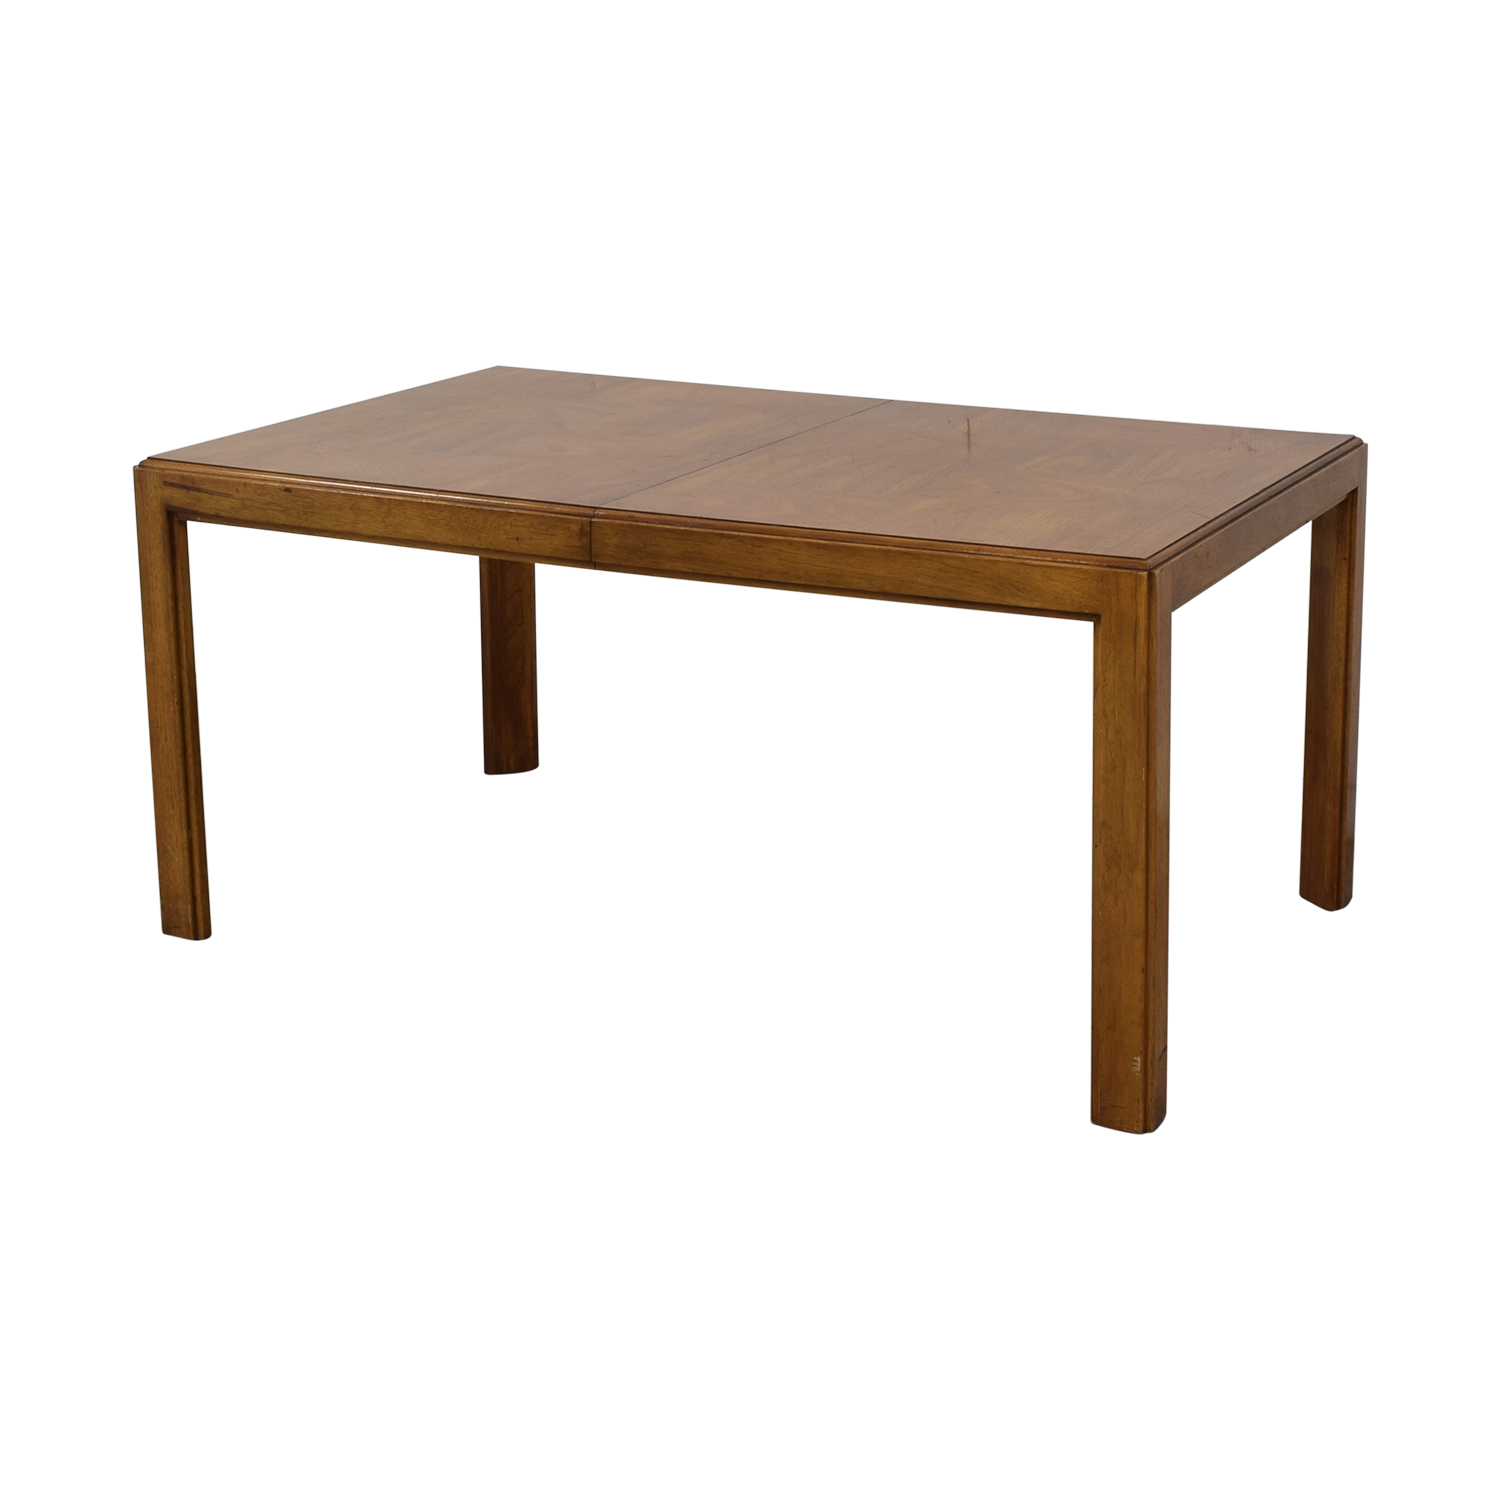 Drexel Heritage Drexel Heritage Dining Table Dinner Tables